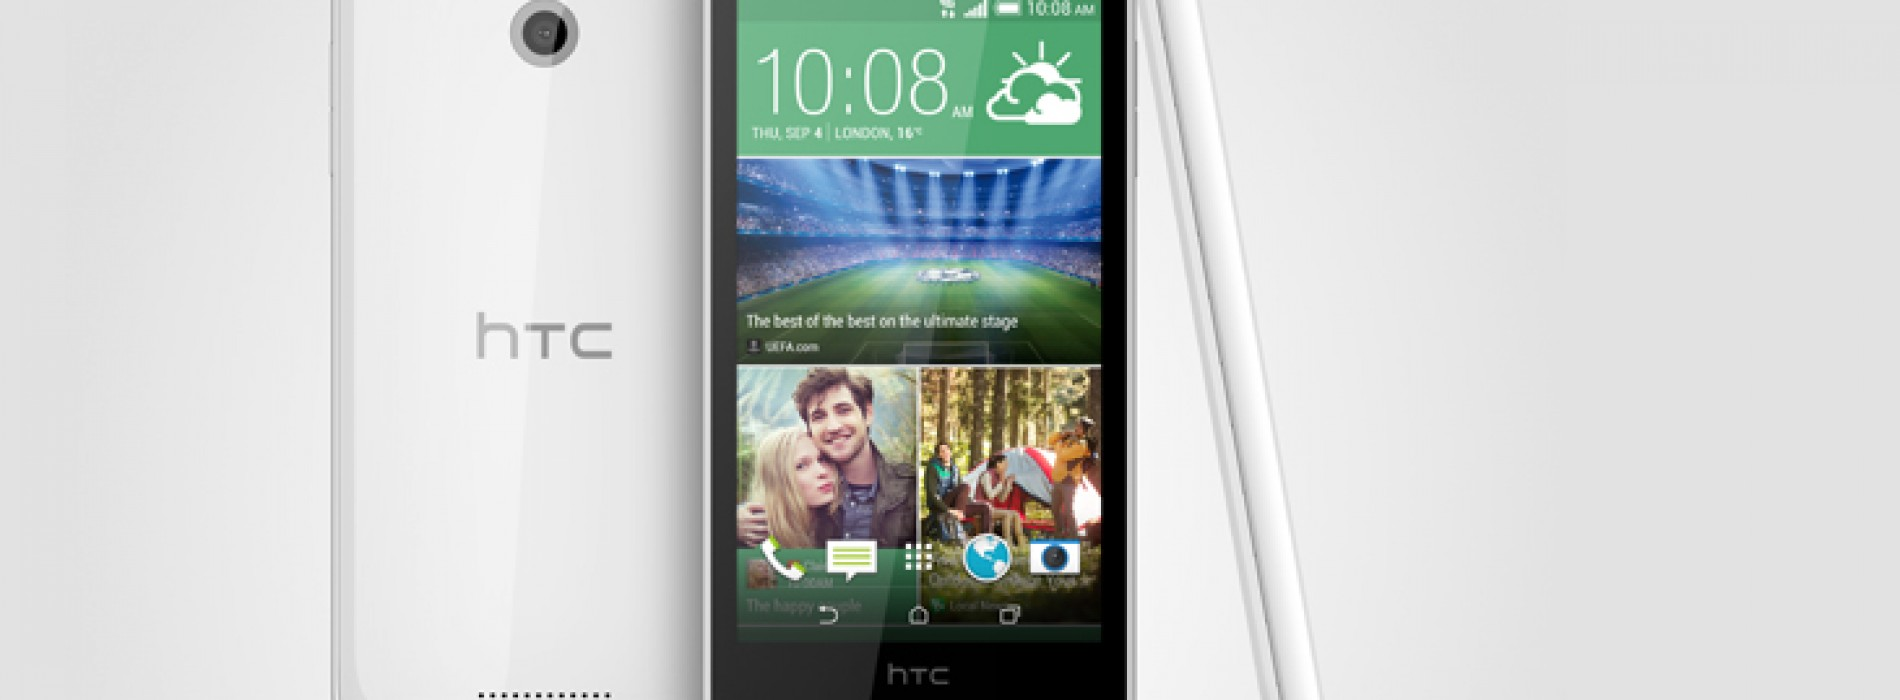 HTC Desire 510 delivers 4G LTE on a budget